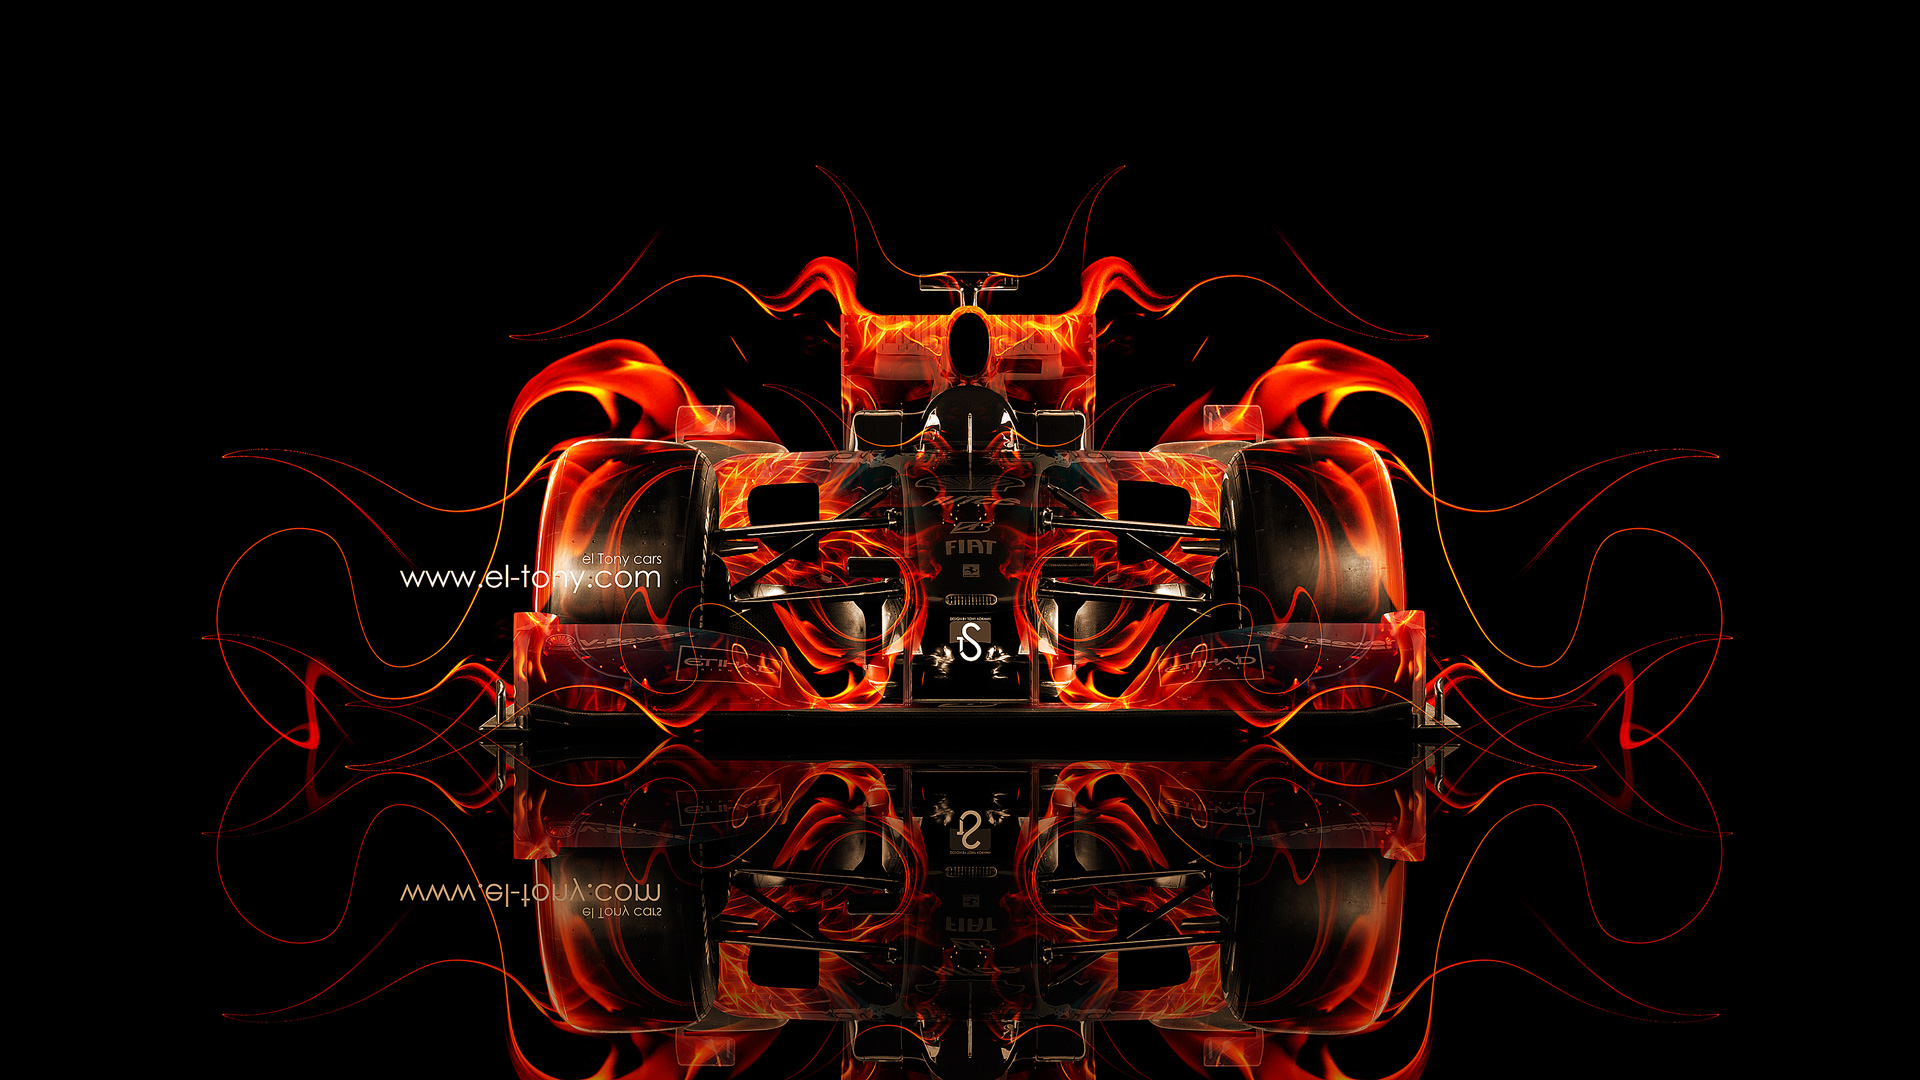 front fire abstract car 2014 hd wallpapers design by tony Car Pictures 1920x1080